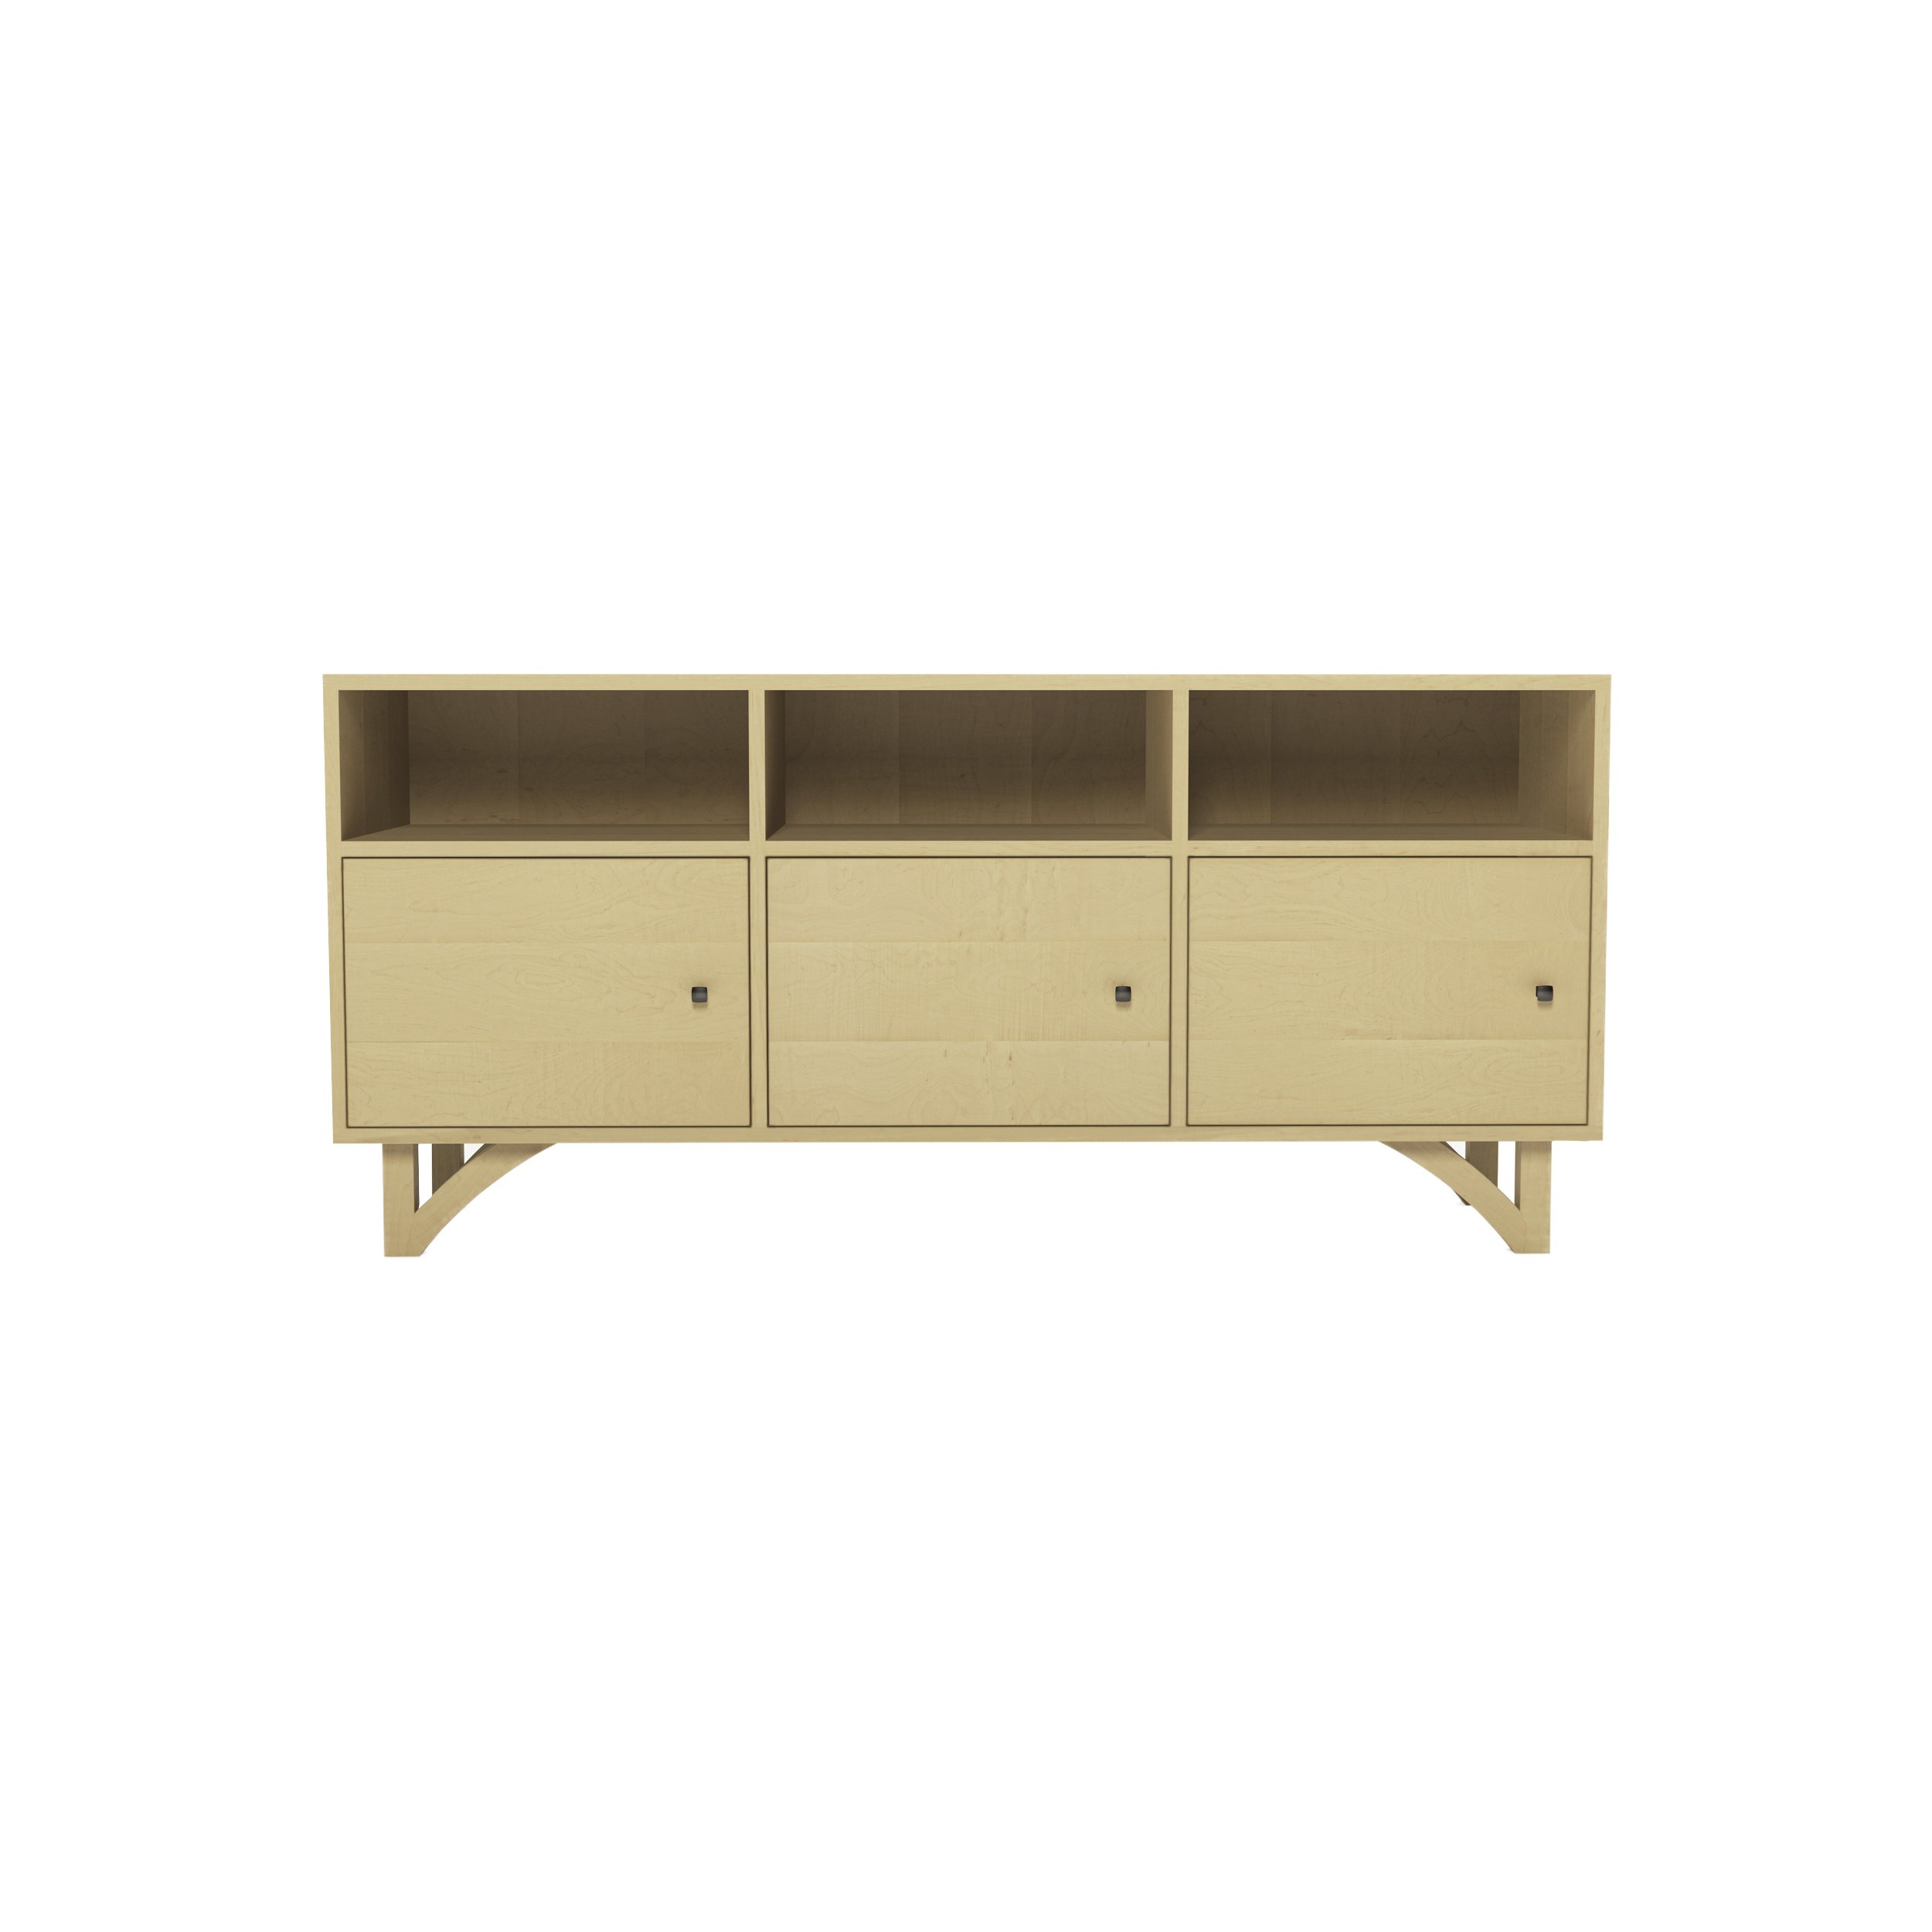 Series 454 Media Cabinet With Three Doors At 60″ In Width